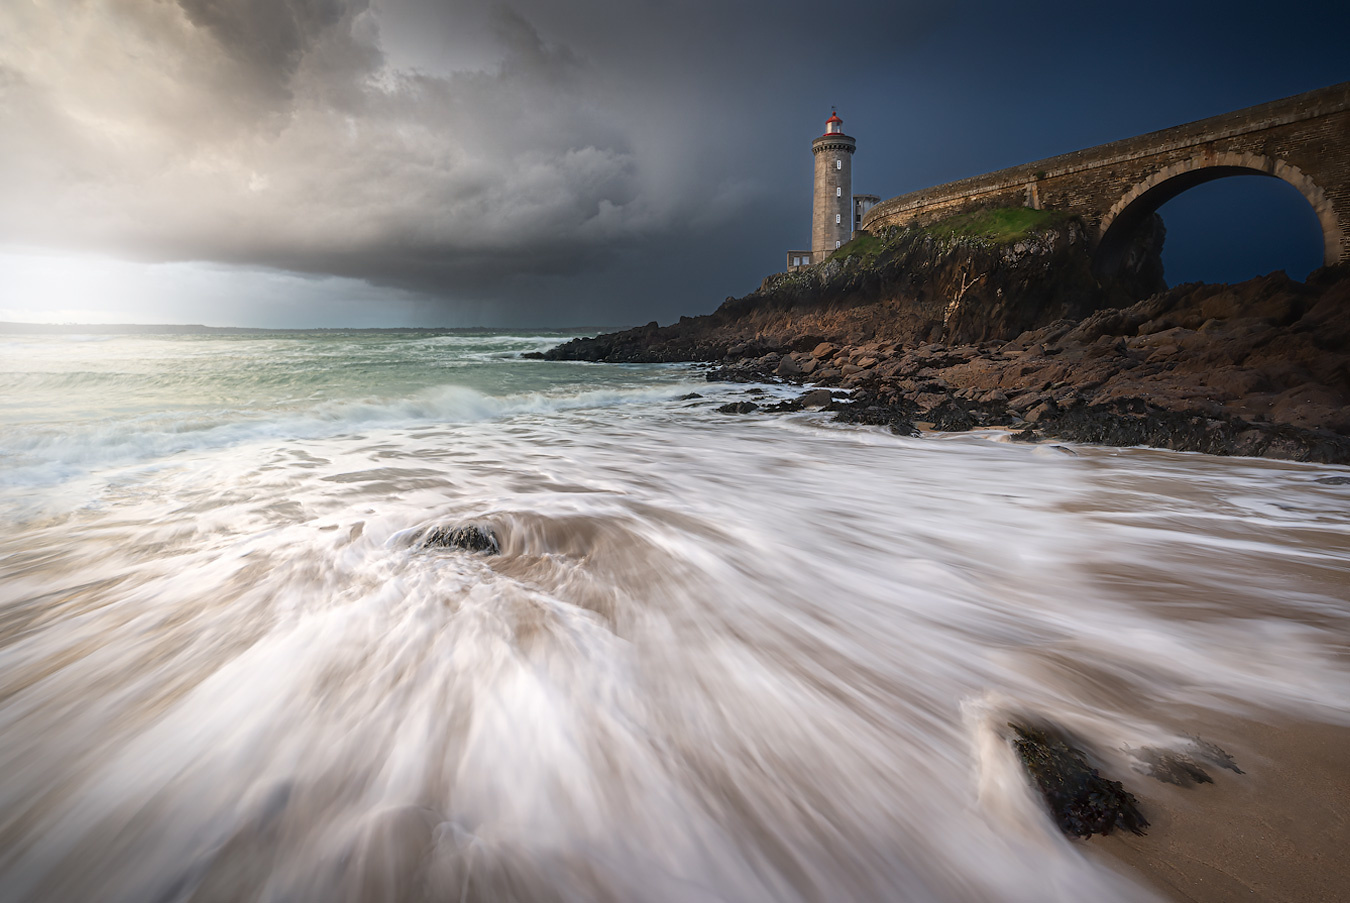 ''Inflowing storm'' by Kevin Teerlynck